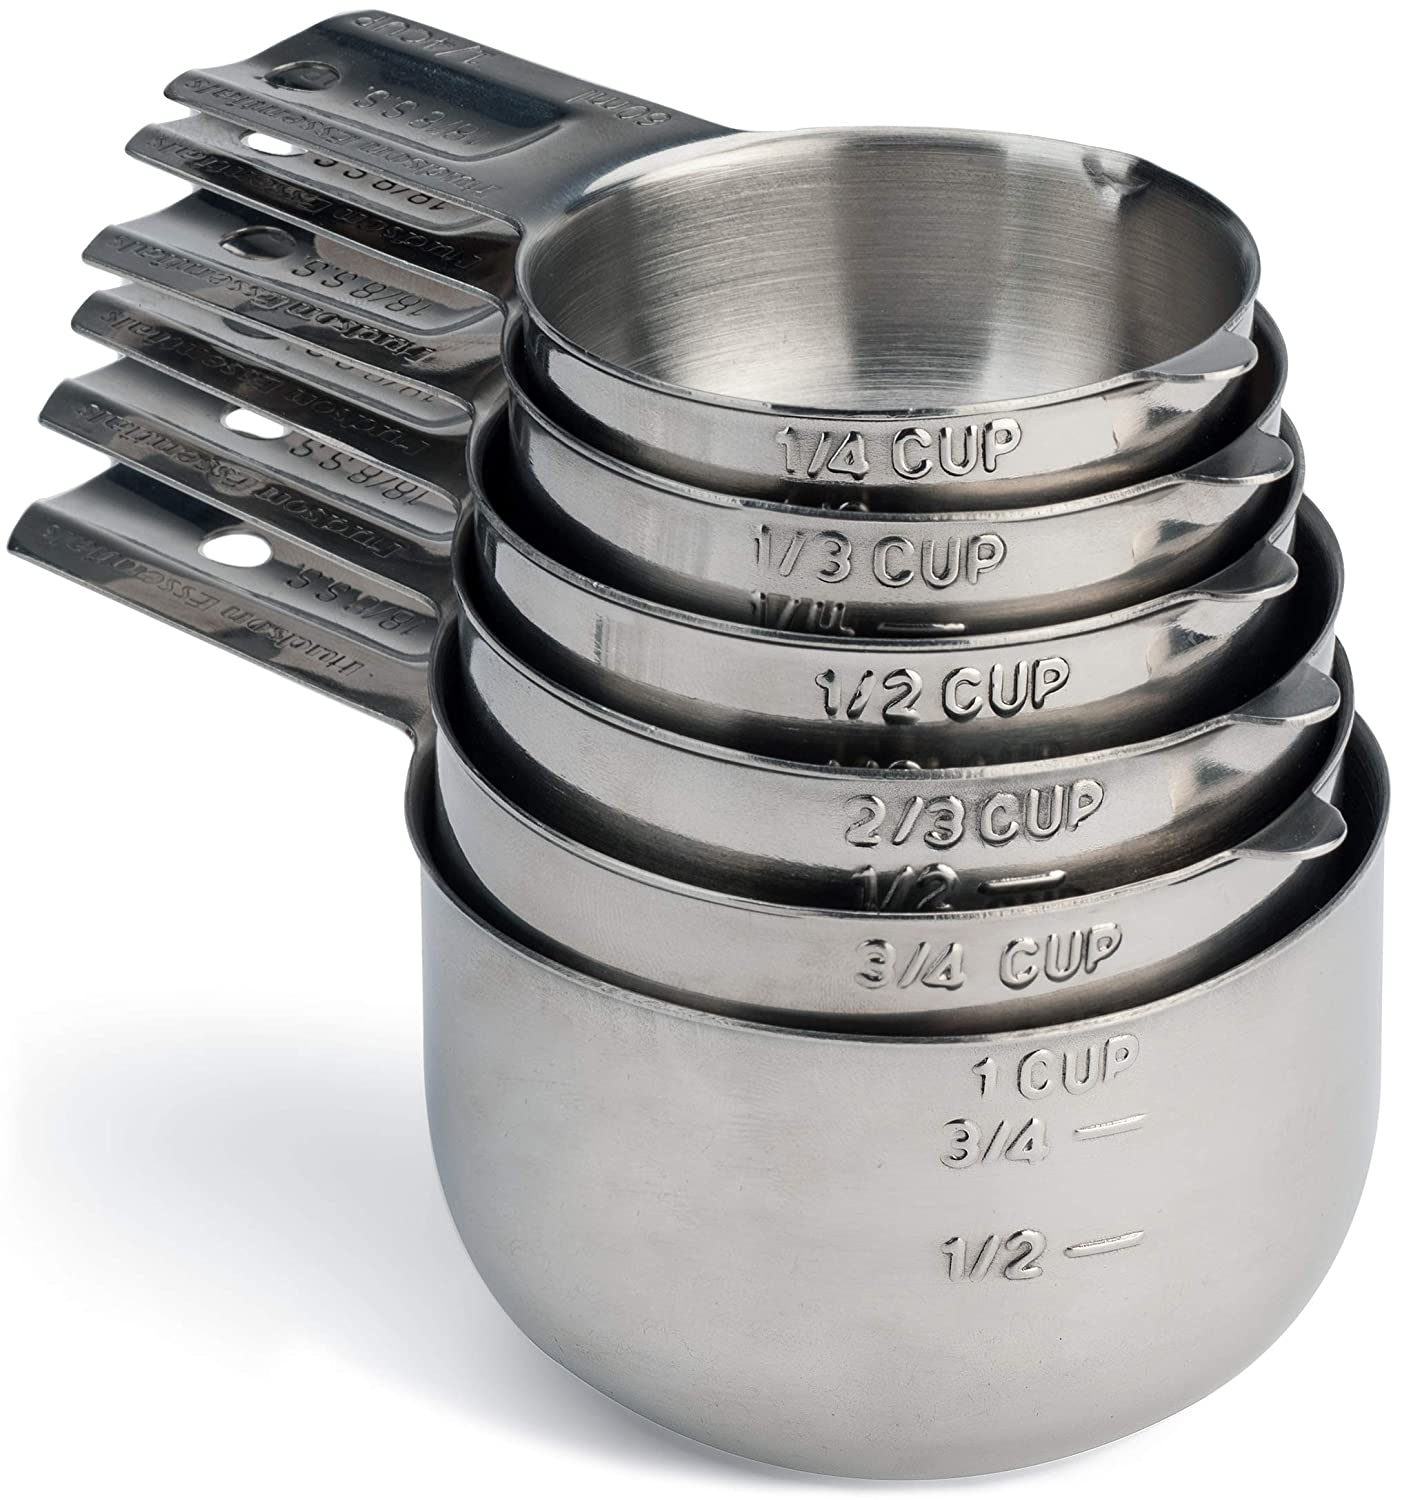 Hudson Essentials Stainless Steel Measuring Cups and Spoons Set (6 Piece Set)